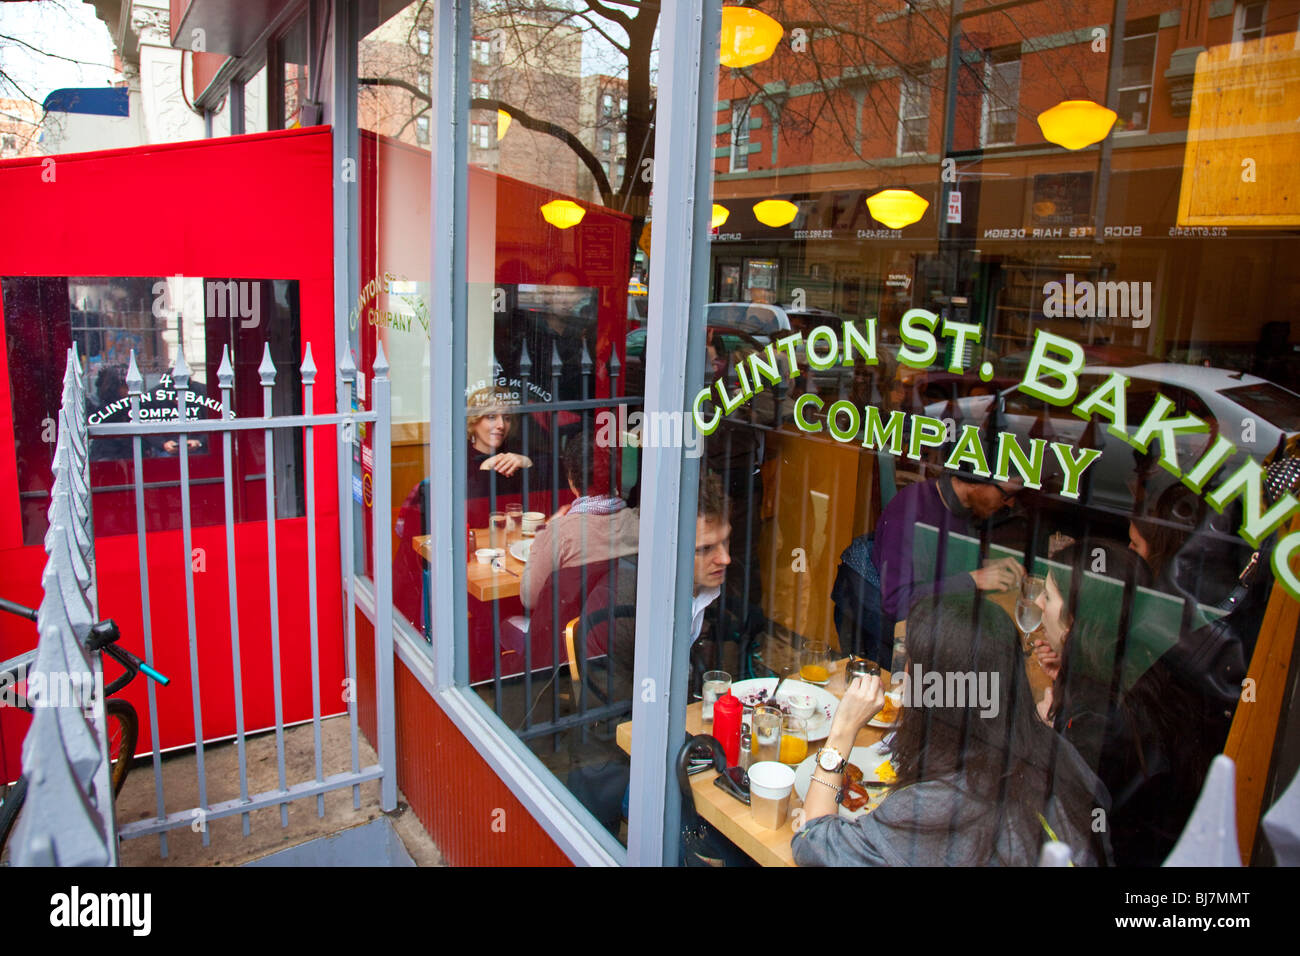 Brunch at Clinton St Baking Company in the Lower East Side, Manhattan, New York - Stock Image